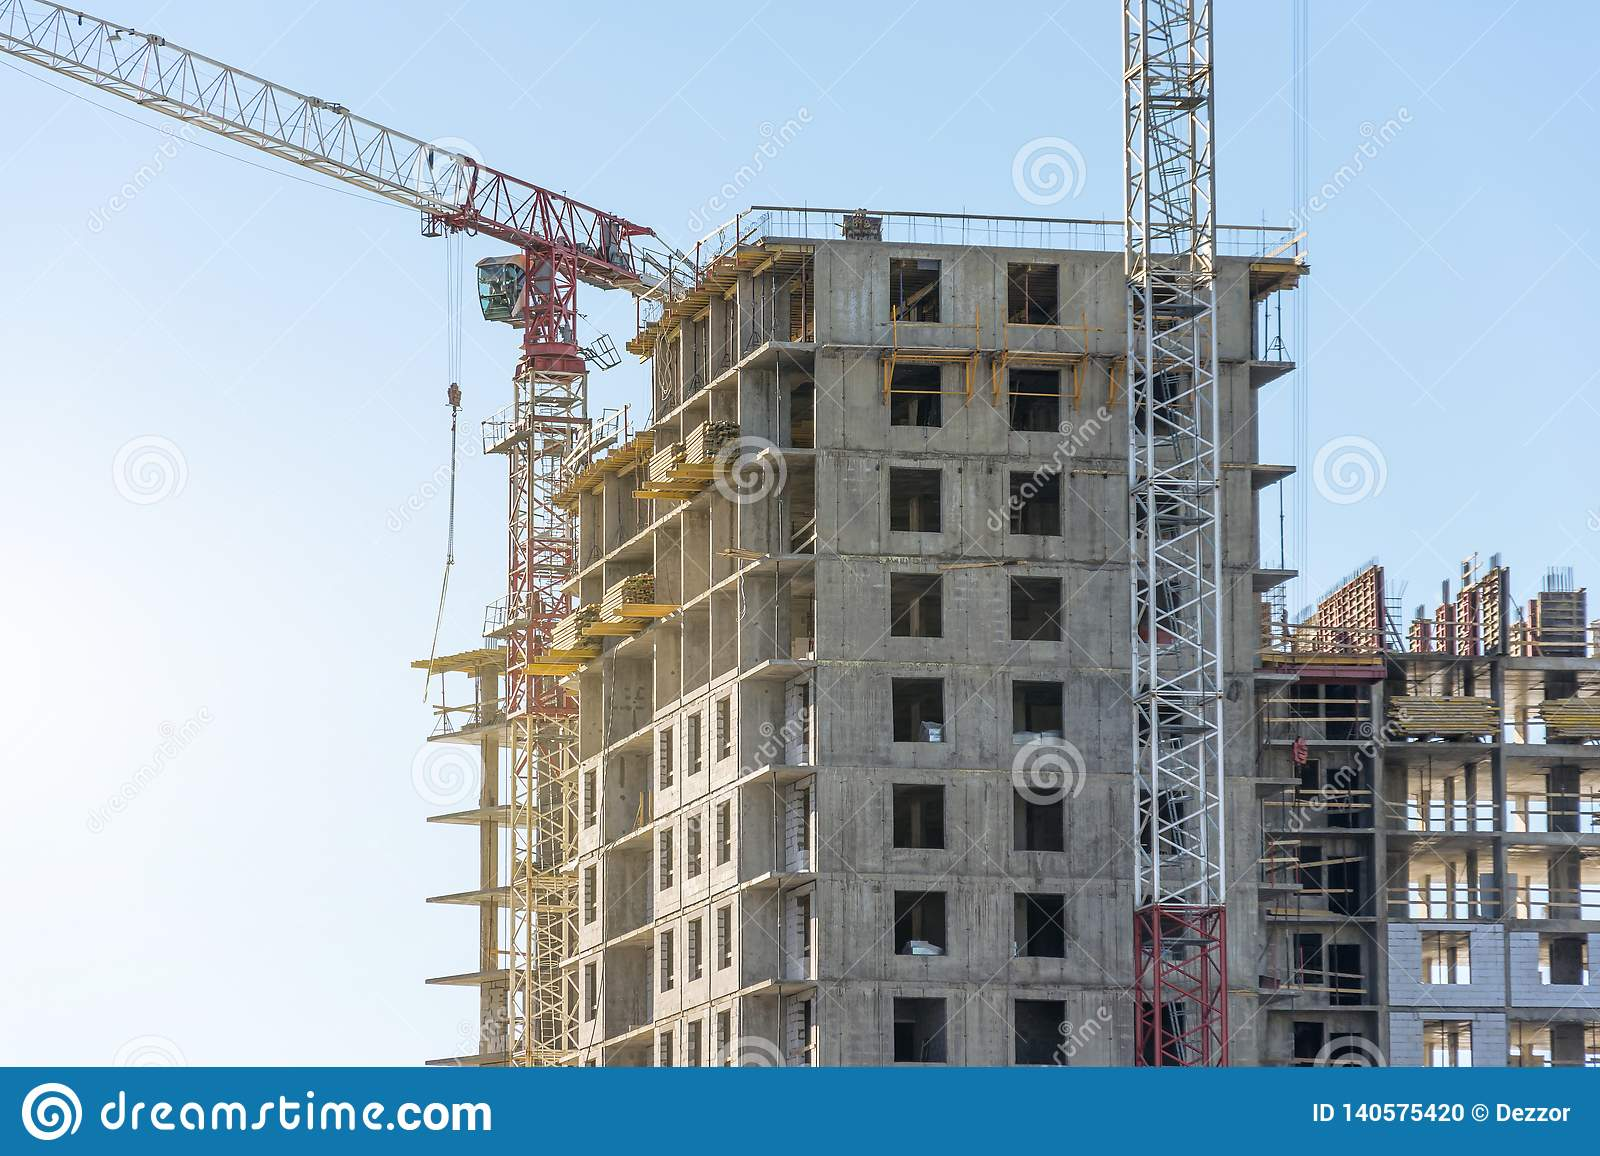 Crane And High Rise Residential Building Real Estate Construction Stock Photo Image Of Real Business 140575420